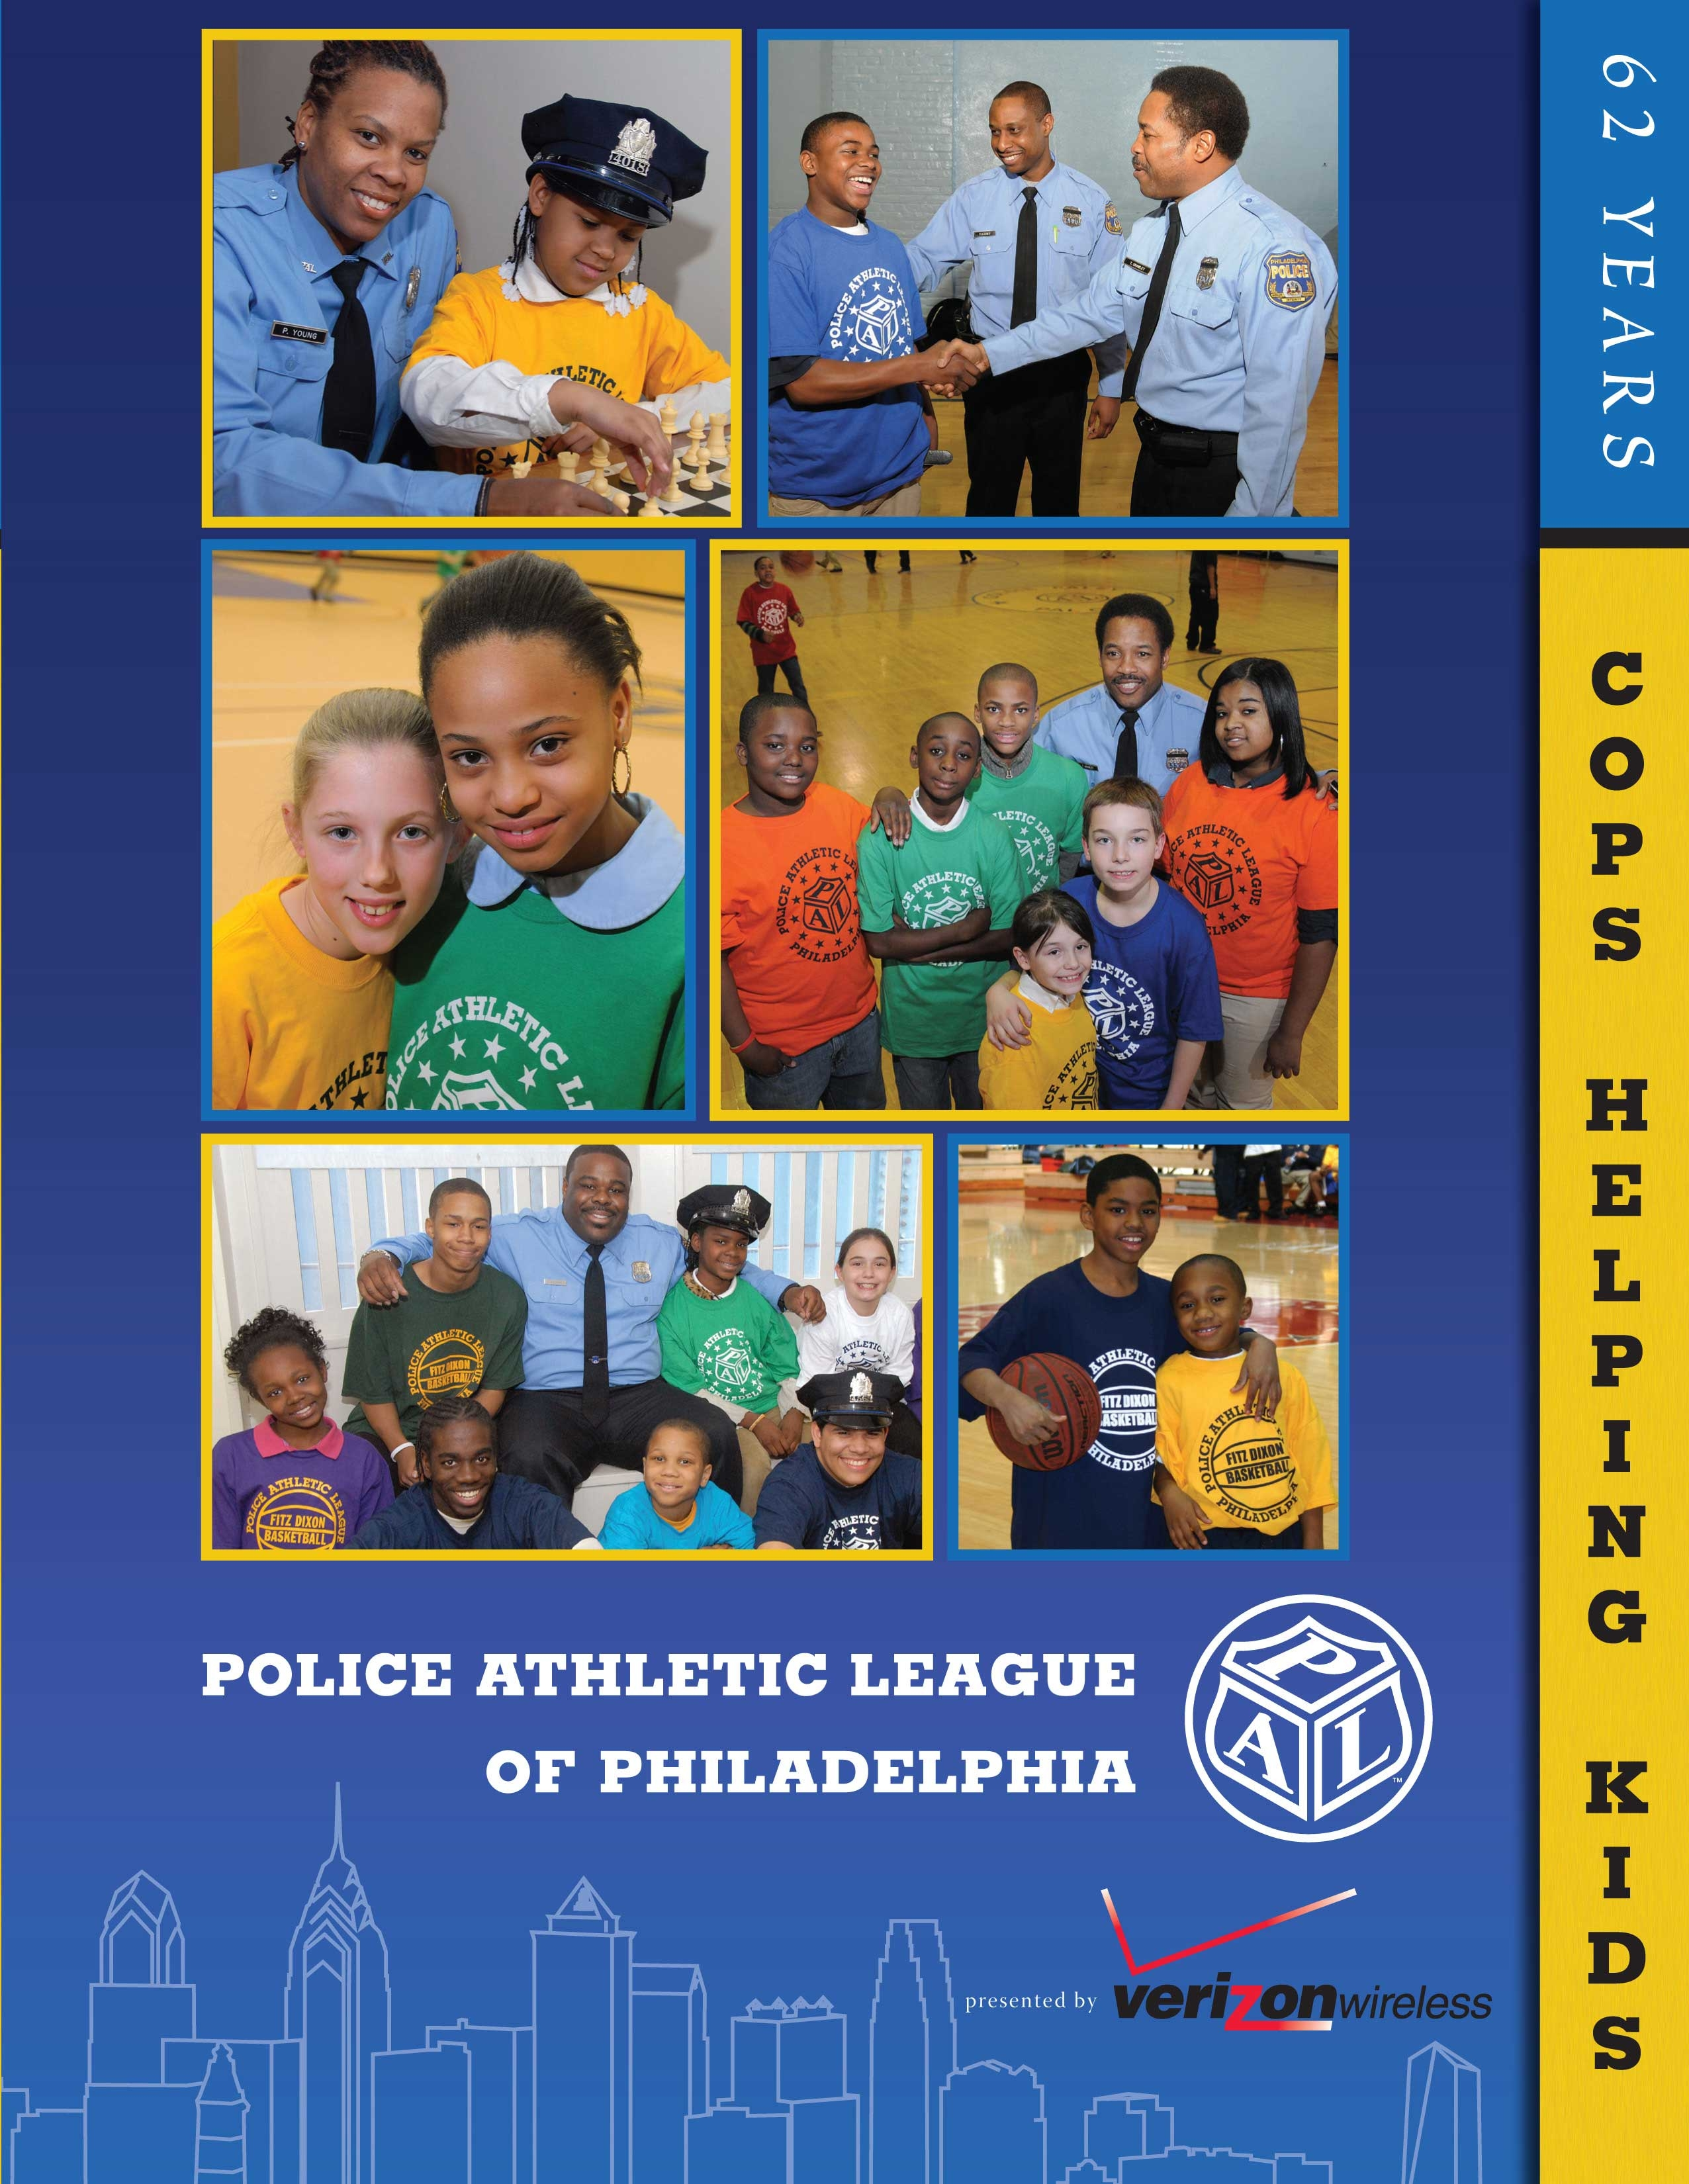 pal_2009_cover